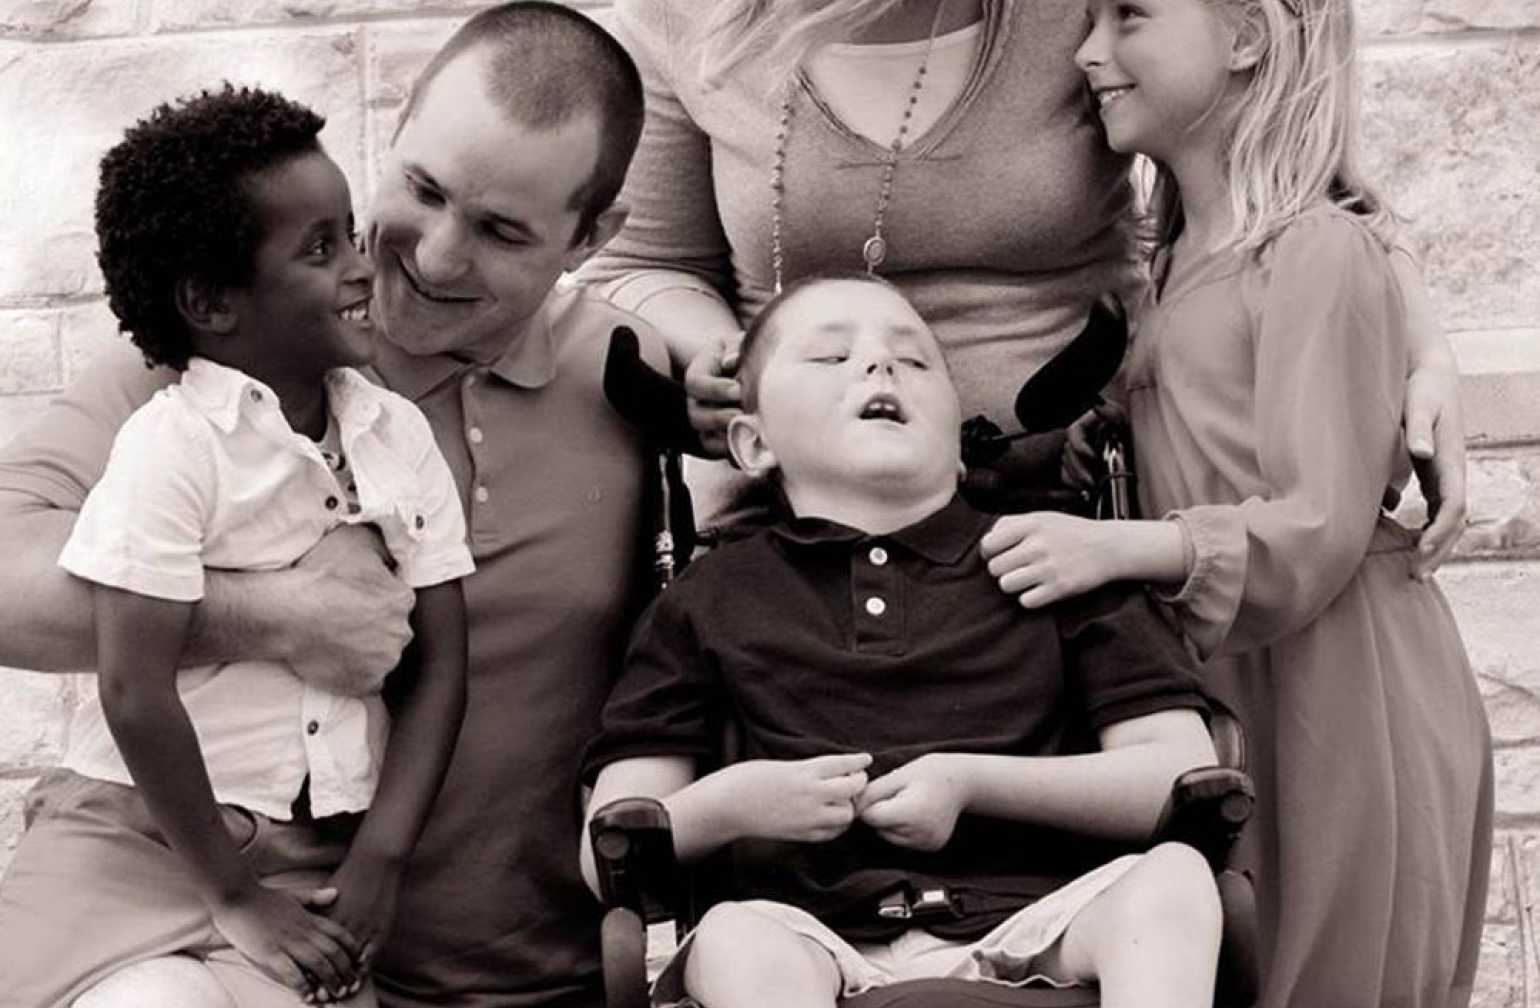 Jeffrey with his family in black and white